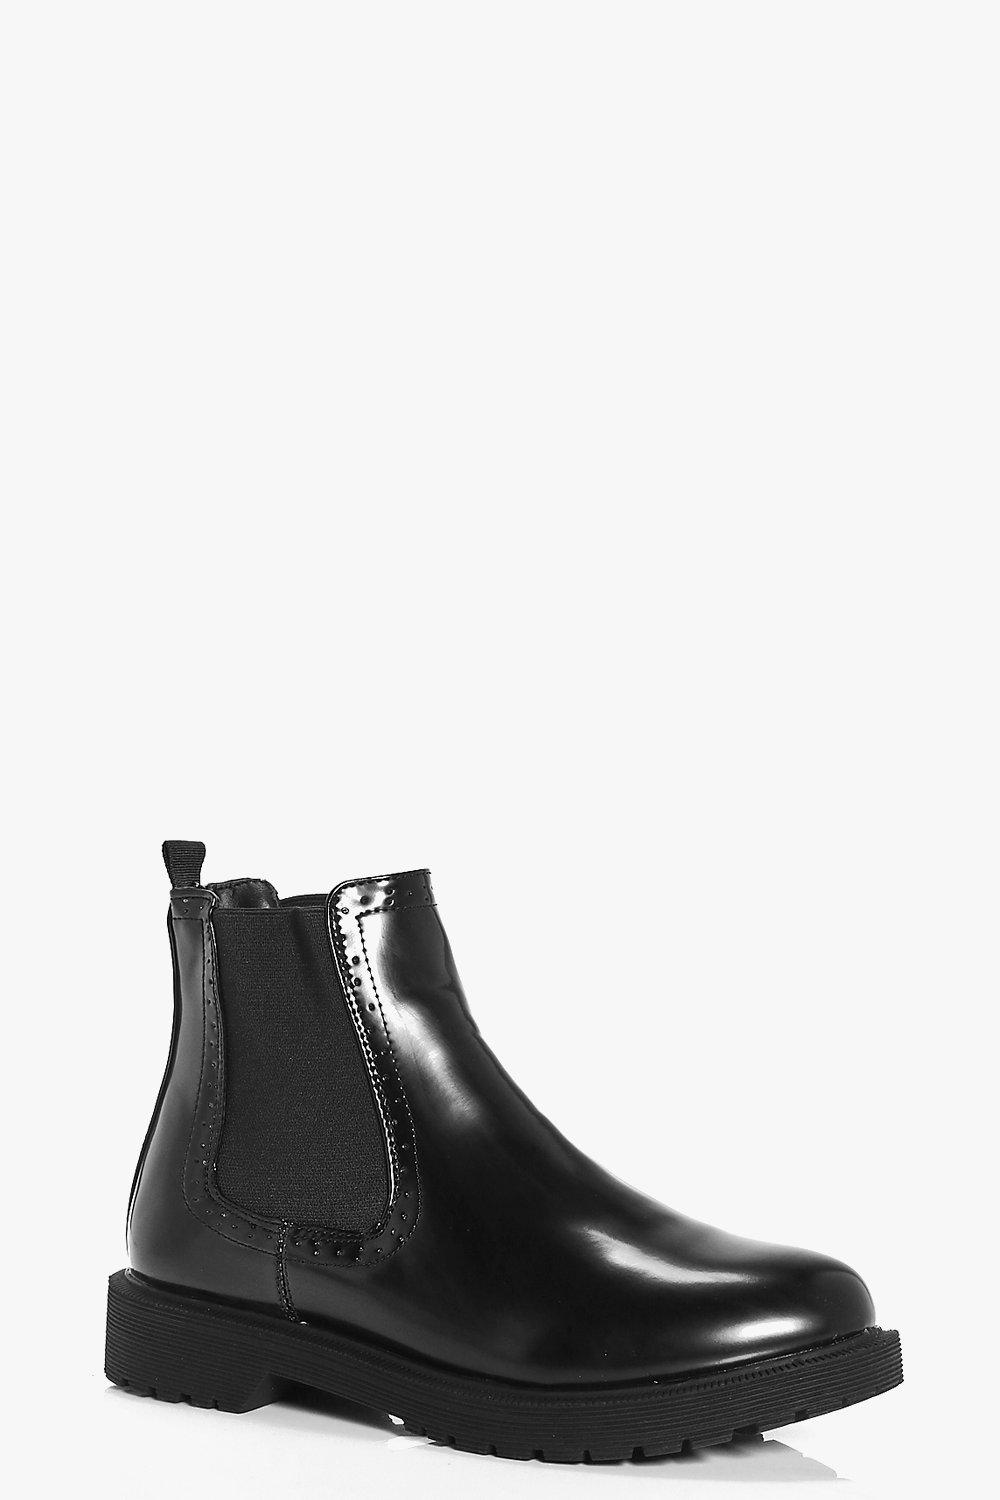 Scarlet Patent Chelsea Boot